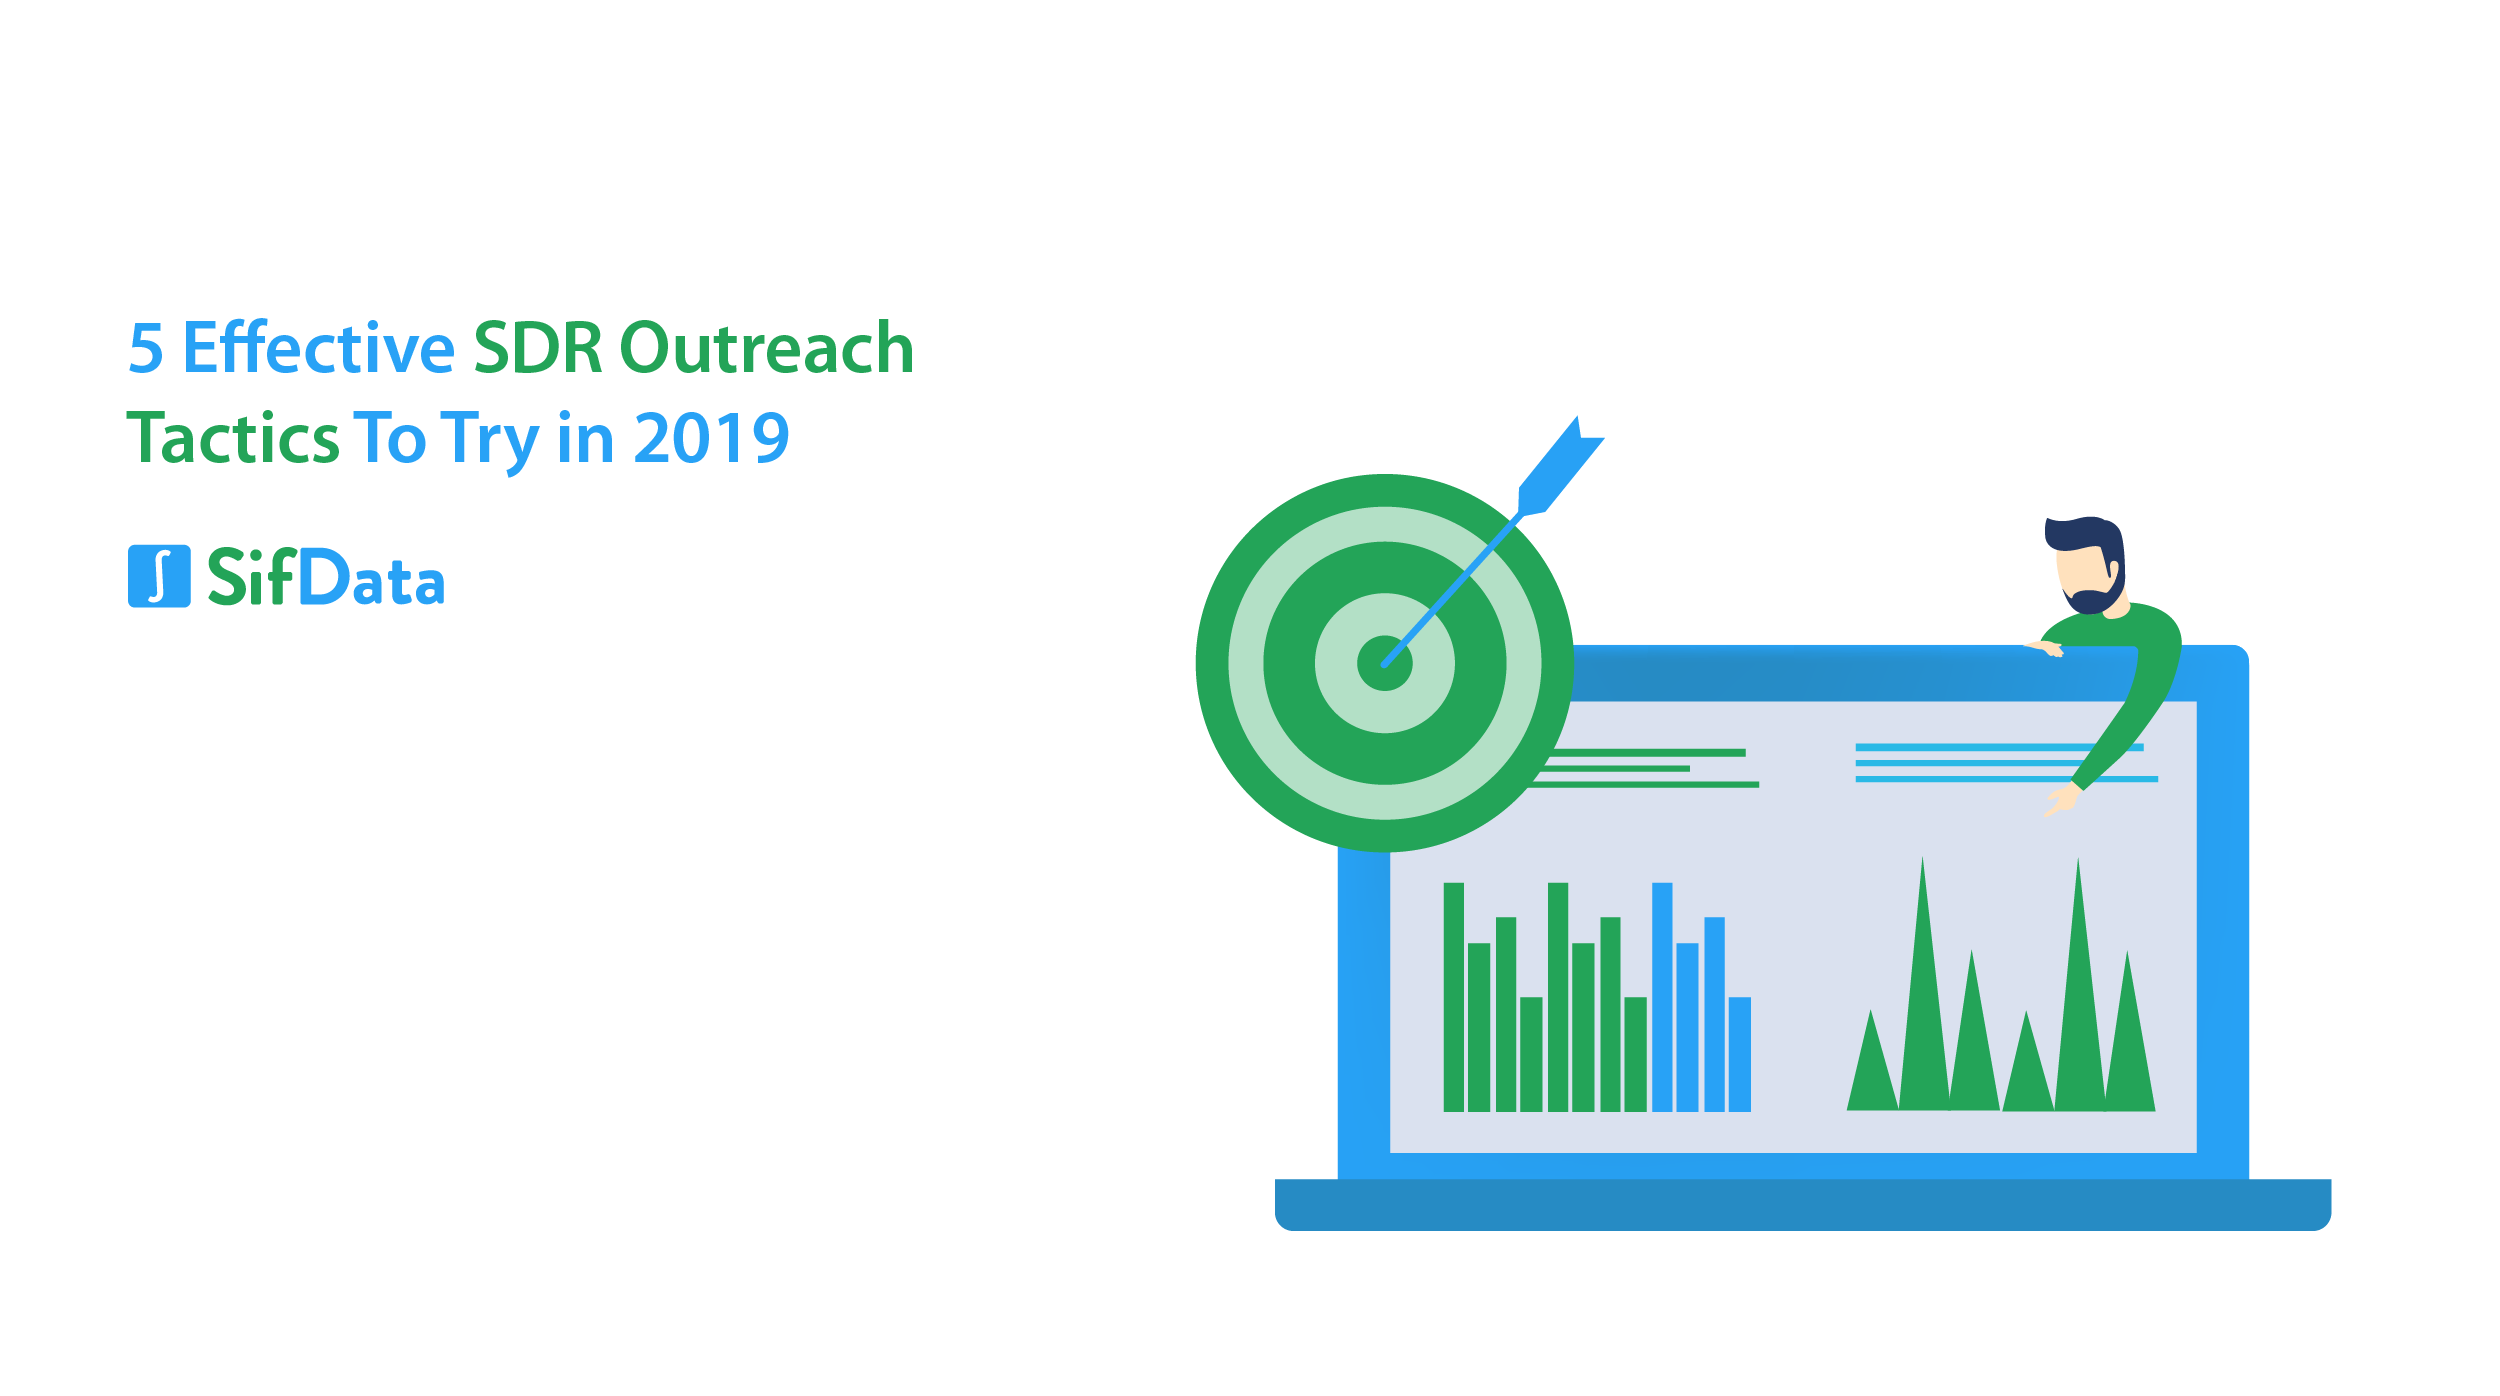 5 EFFECTIVE SDR OUTREACH TACTICS TO TRY IN 2019